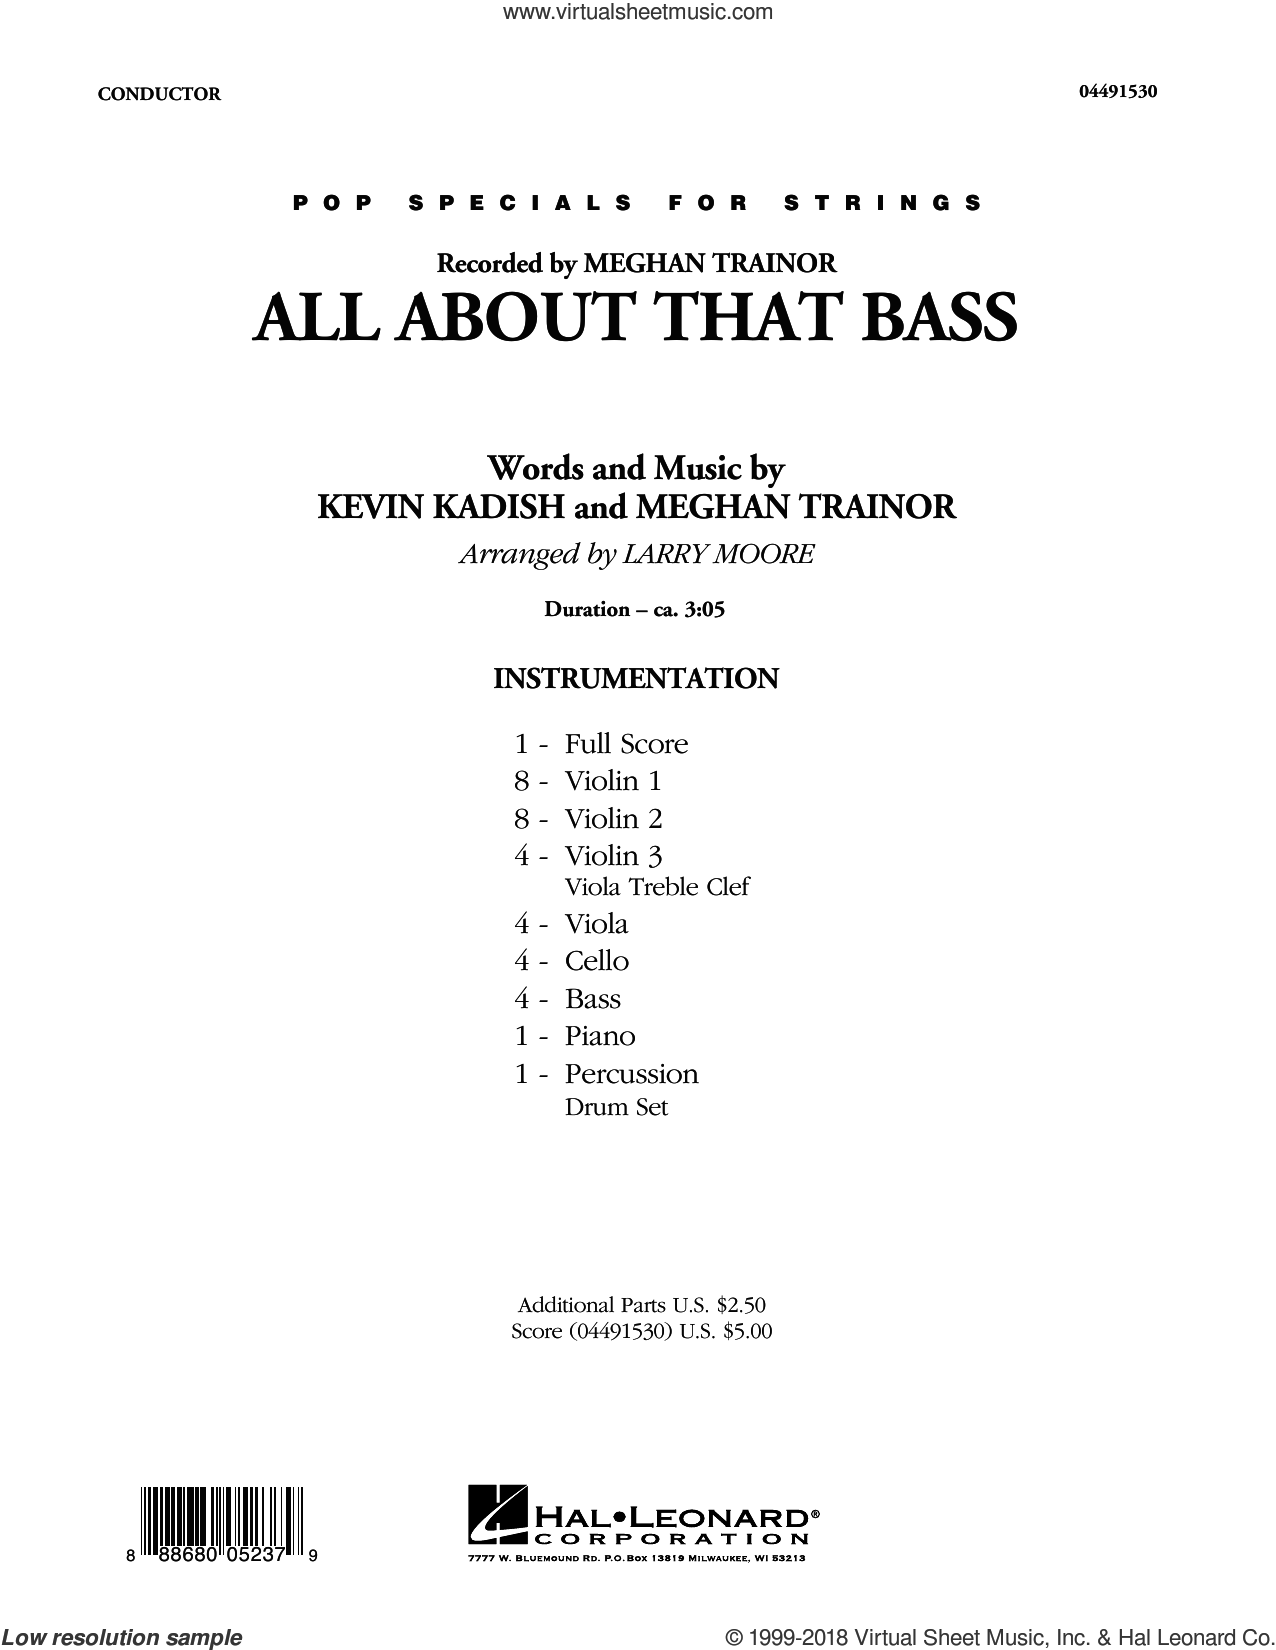 All About That Bass (COMPLETE) sheet music for orchestra by Larry Moore, Kevin Kadish and Meghan Trainor, intermediate skill level